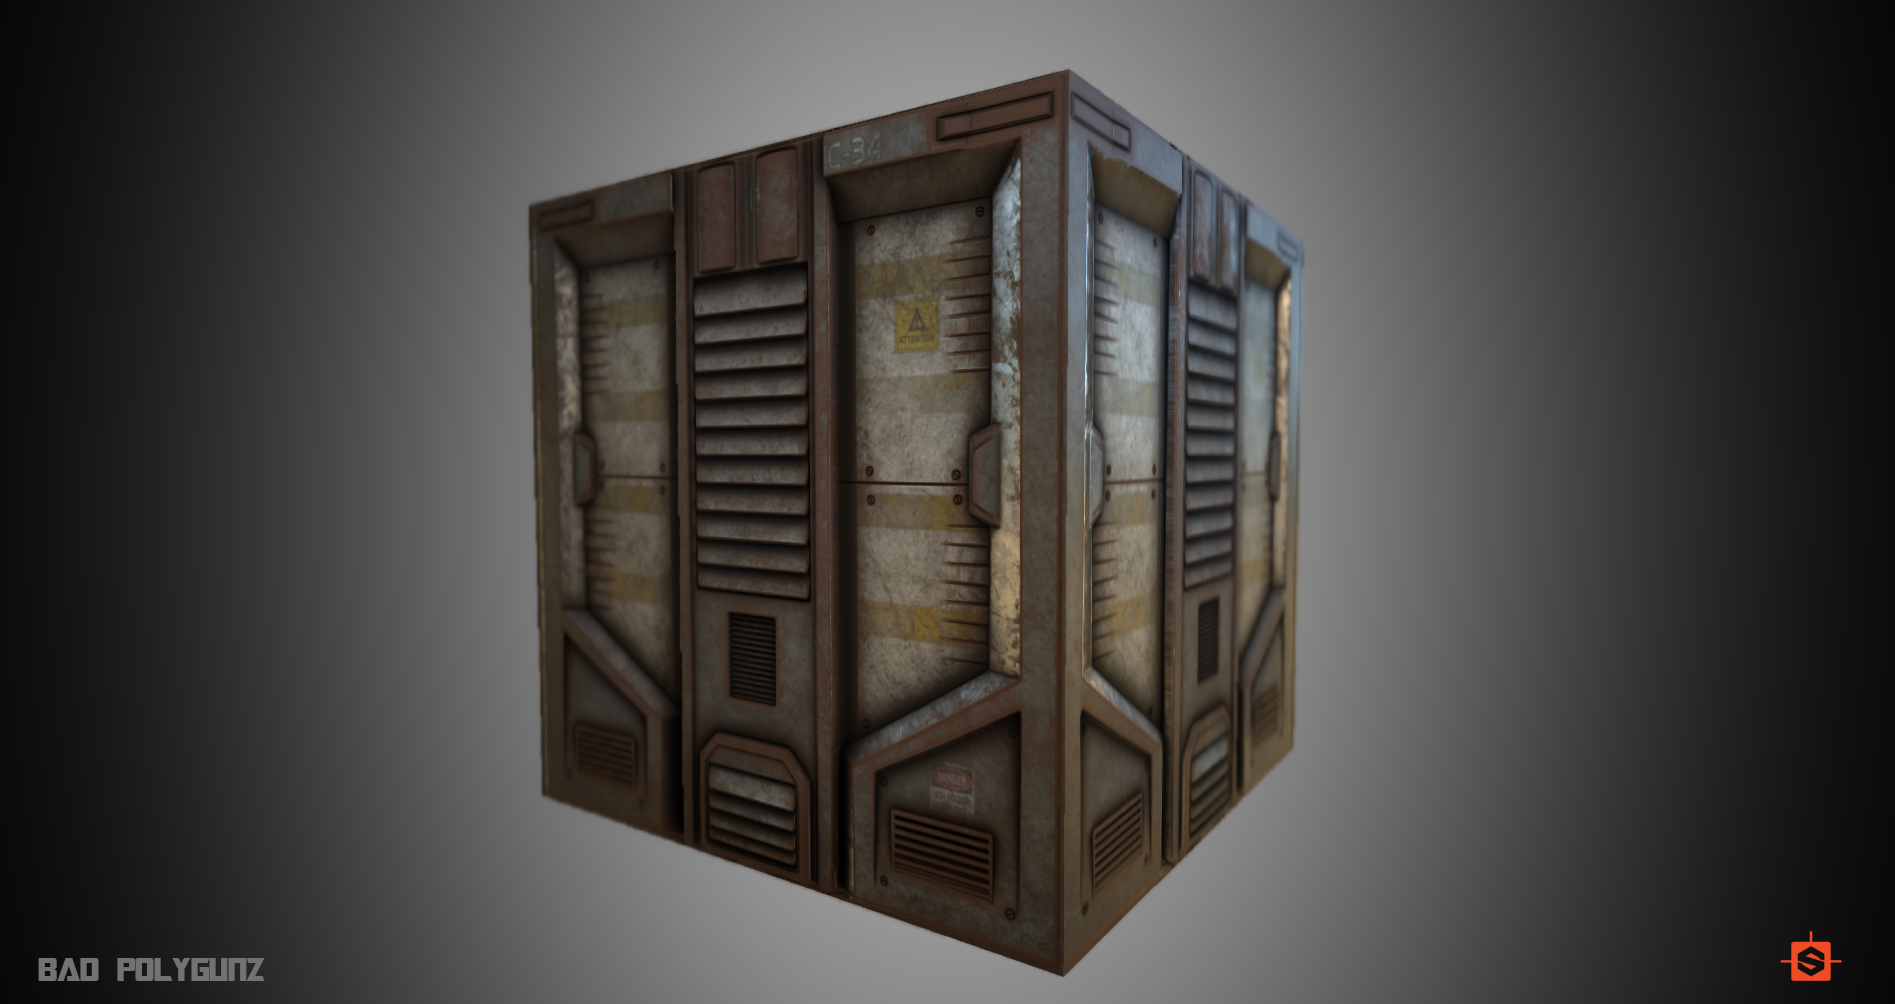 Sci-fi door Fully procedural